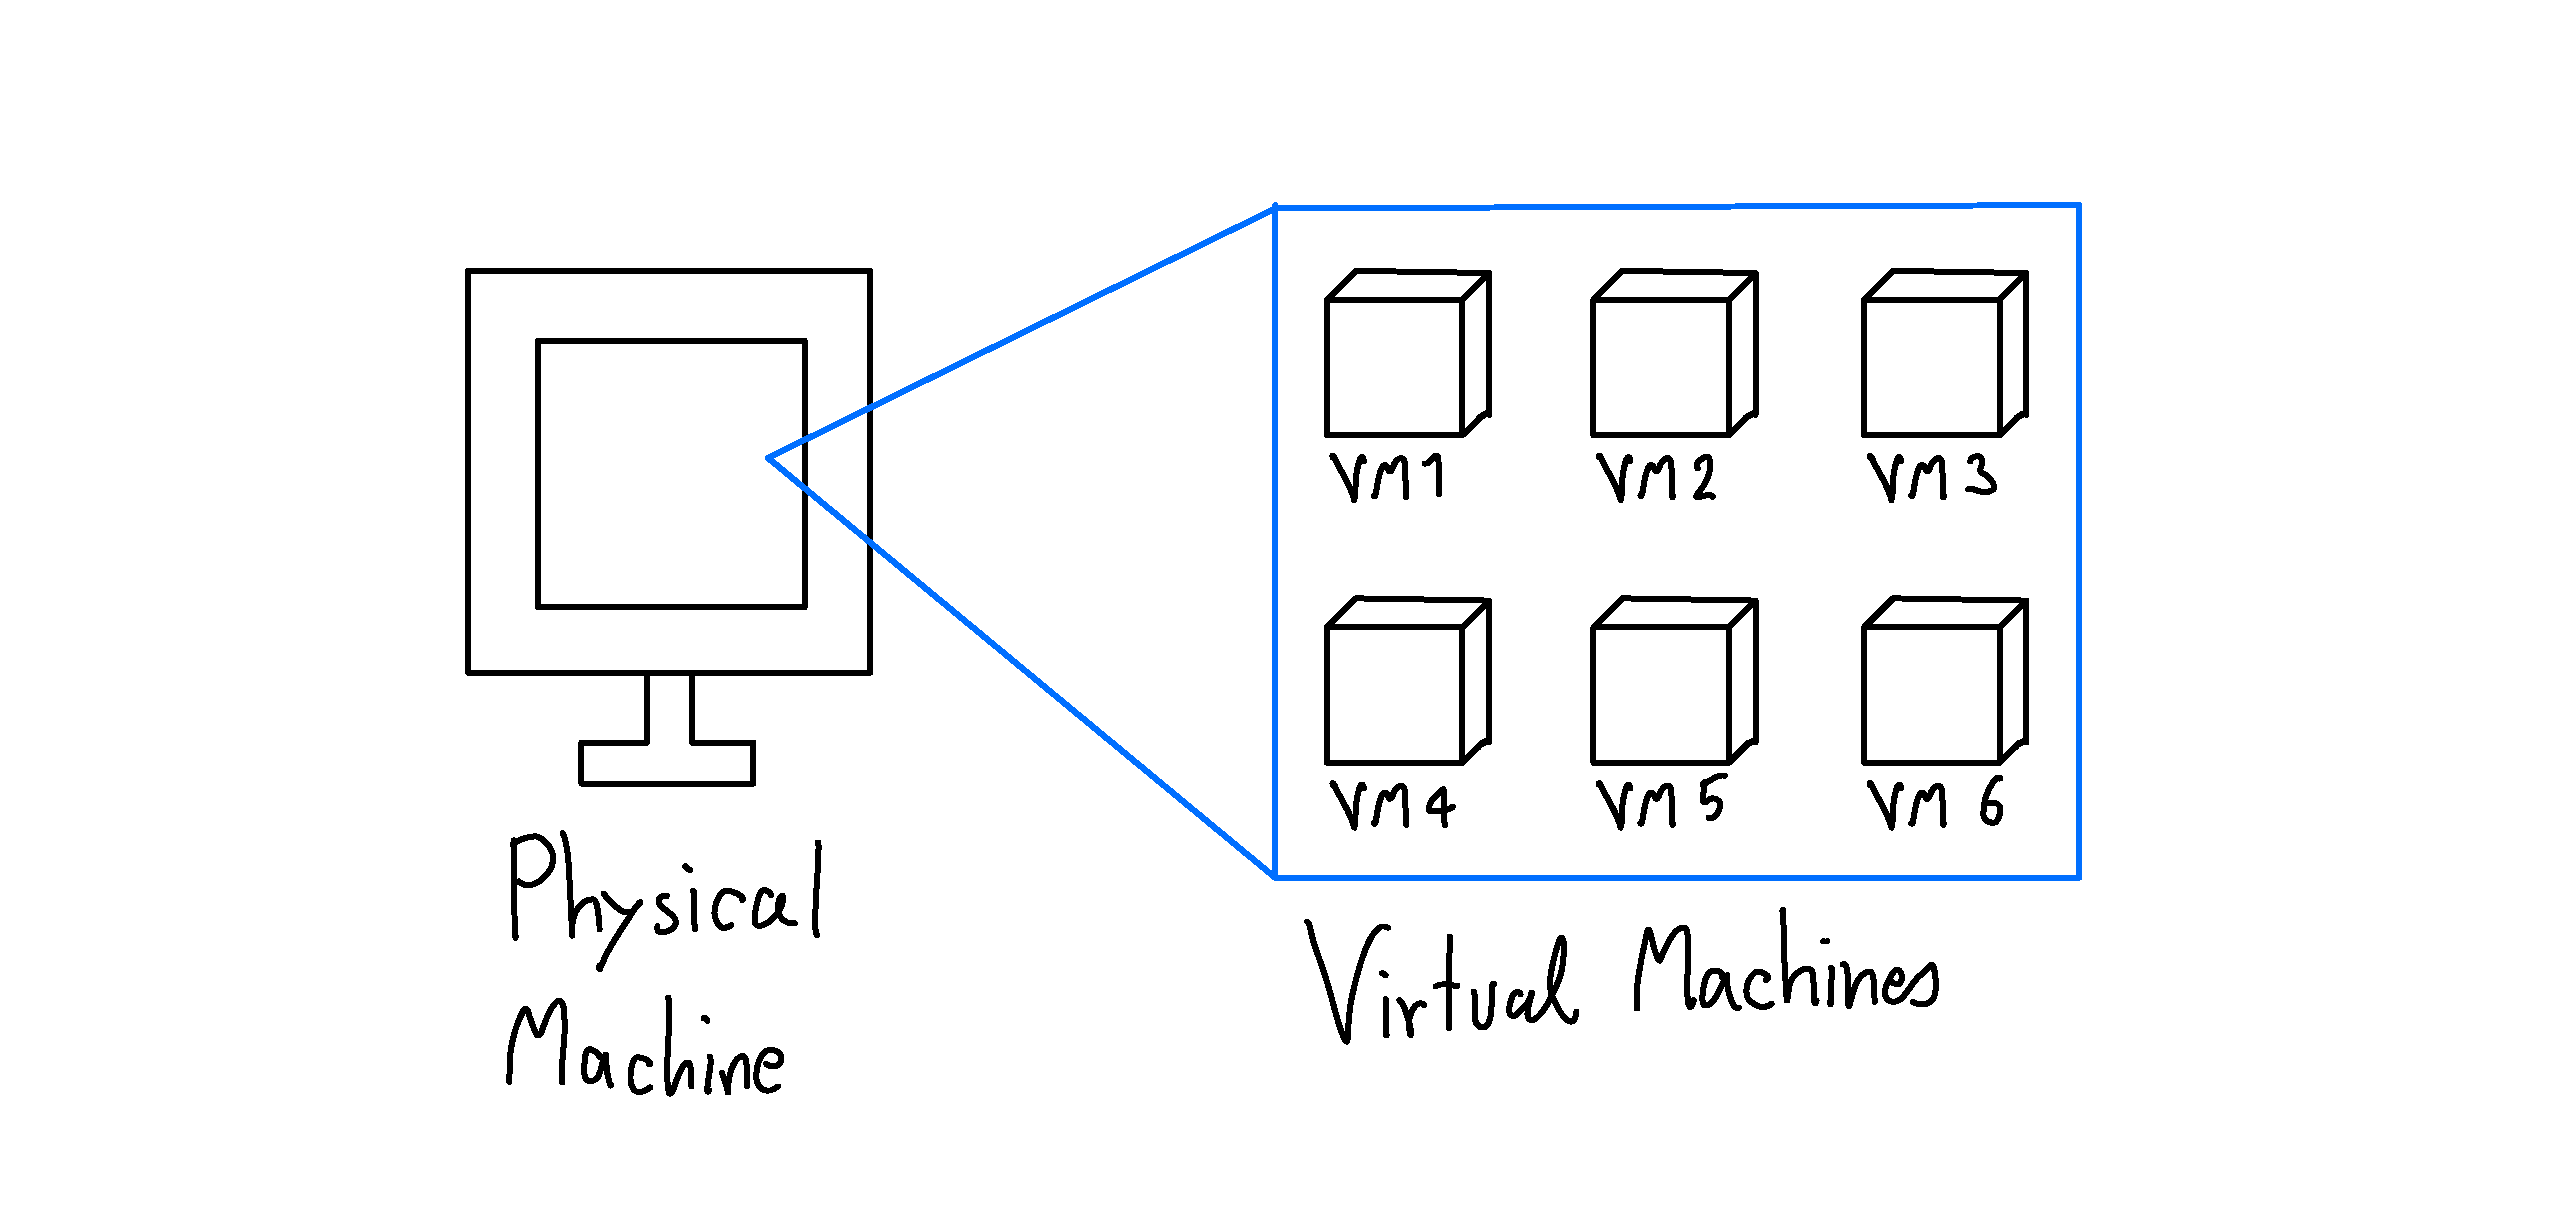 Physical Machine VS Virtual Machine